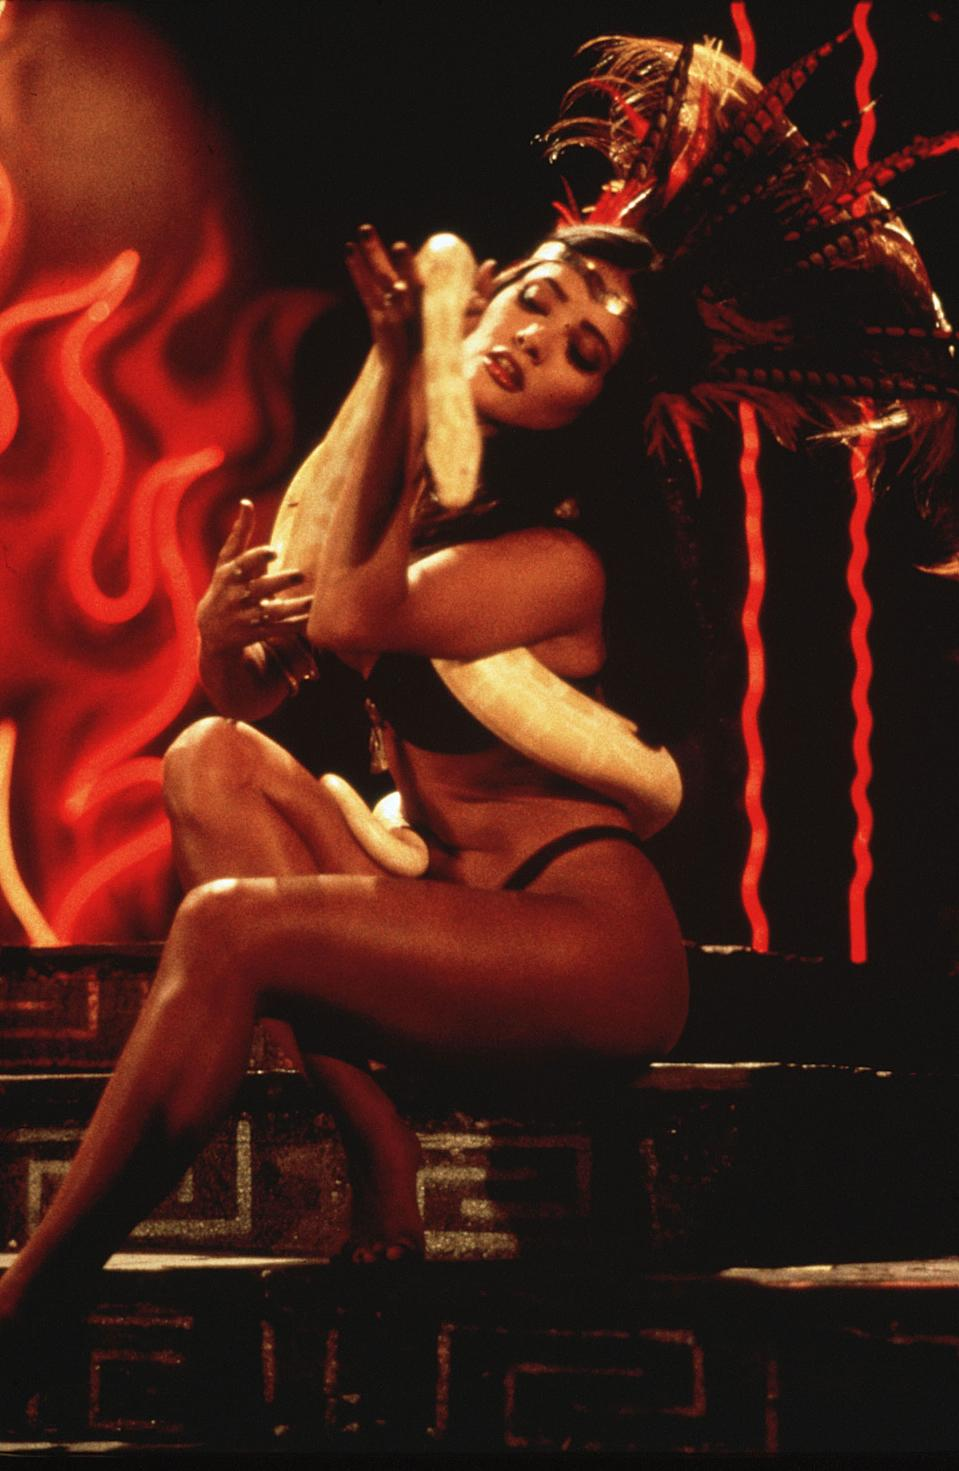 """<strong><em><h3>From Dusk Till Dawn </h3></em></strong><h3>(1996)<br></h3><br>We'll sell you on the sex appeal of this vampire film quickly. Salma Hayek plays a vampire goddess named Santanico Pandemonium who specializes in a """"snake dance,"""" and is but one vampire working in a bar straight out of <em>True Blood</em>.<span class=""""copyright"""">Joyce Podell/Los Hooligans/A Band Apart/Kobal/REX/Shutterstock</span>"""